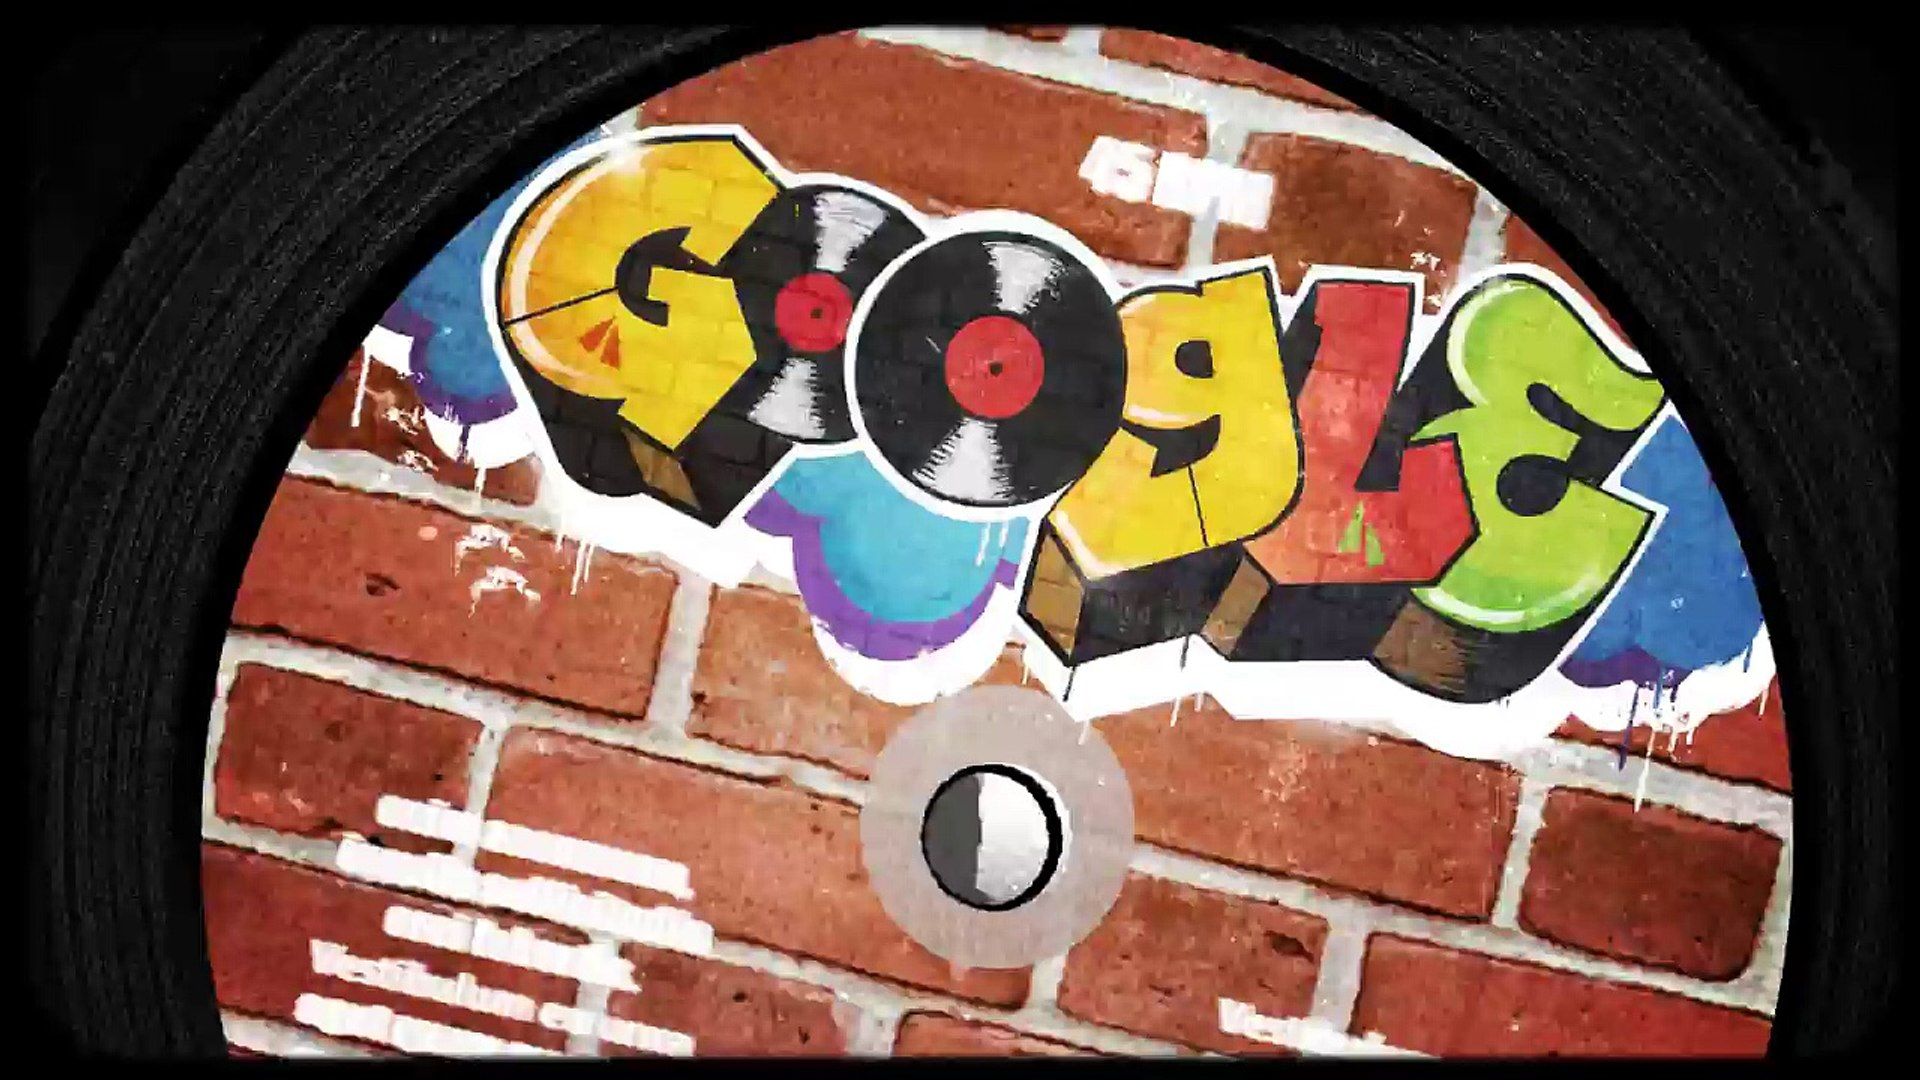 Today's Google celebrate 44th Anniversary of the Birth of Hip Hop